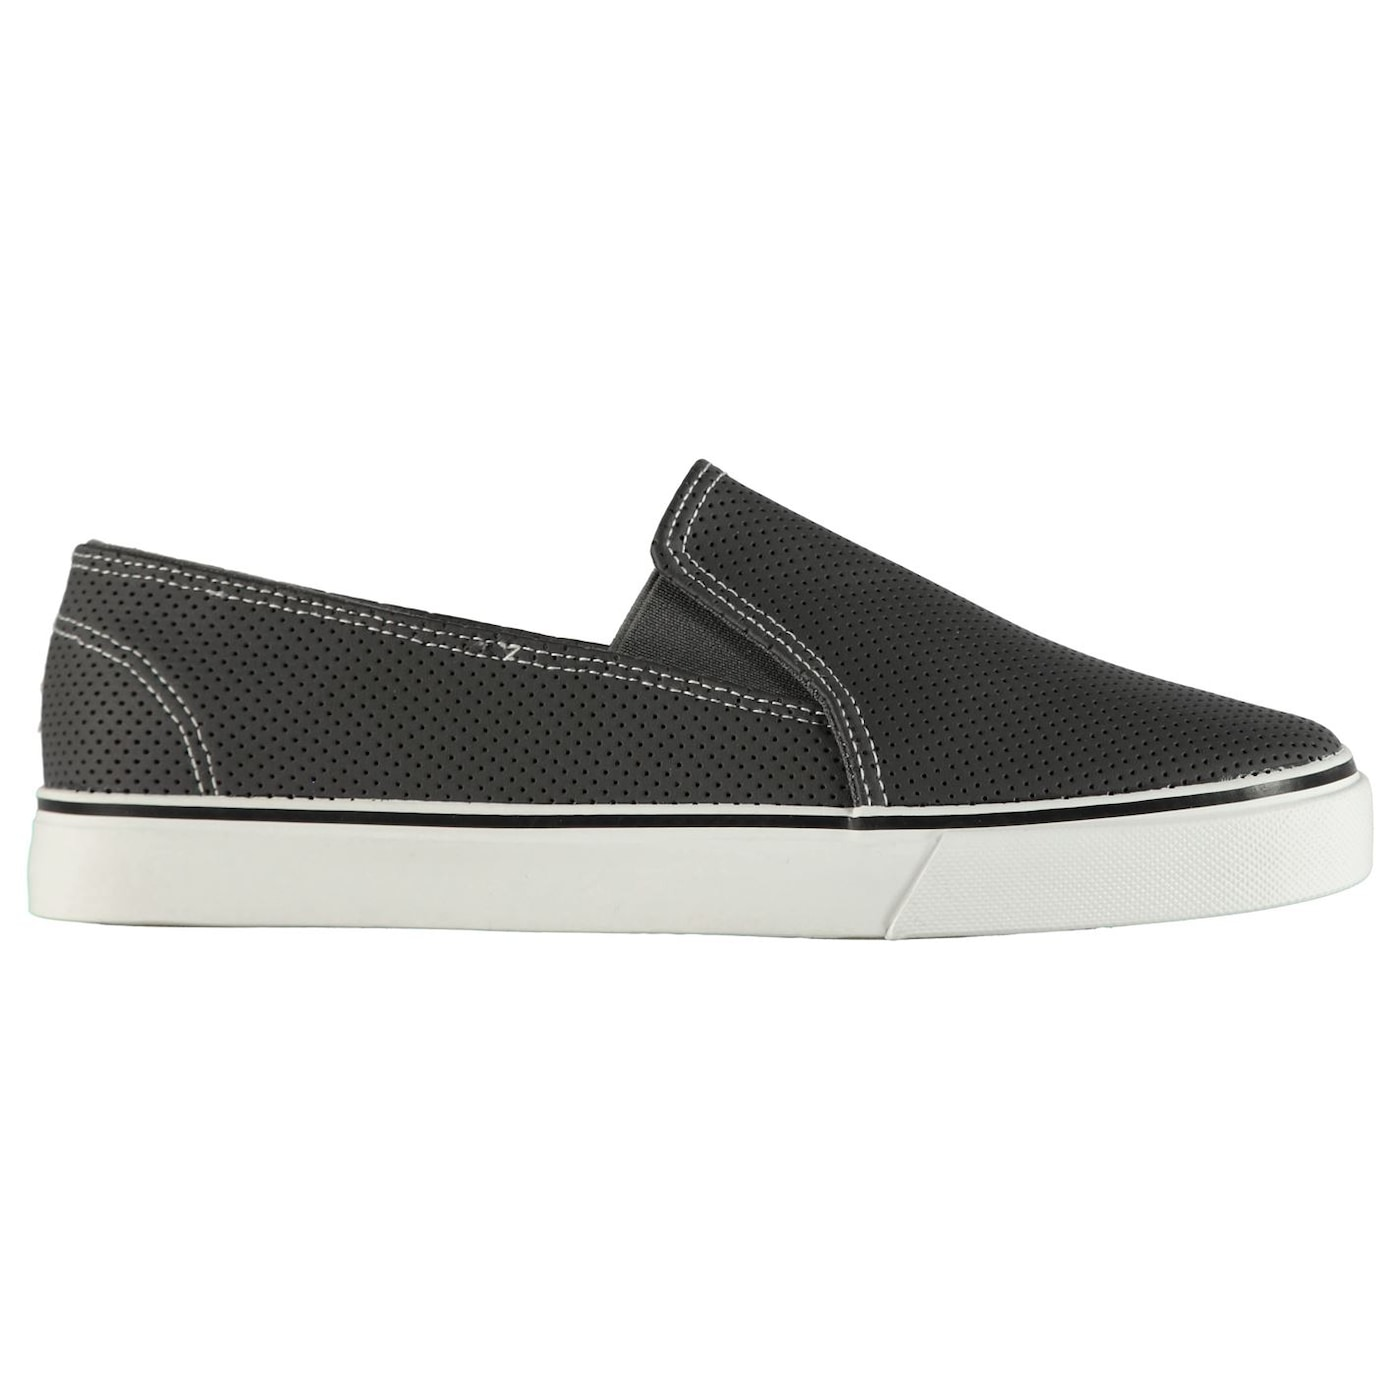 Lee Cooper Perforated Shoes Mens